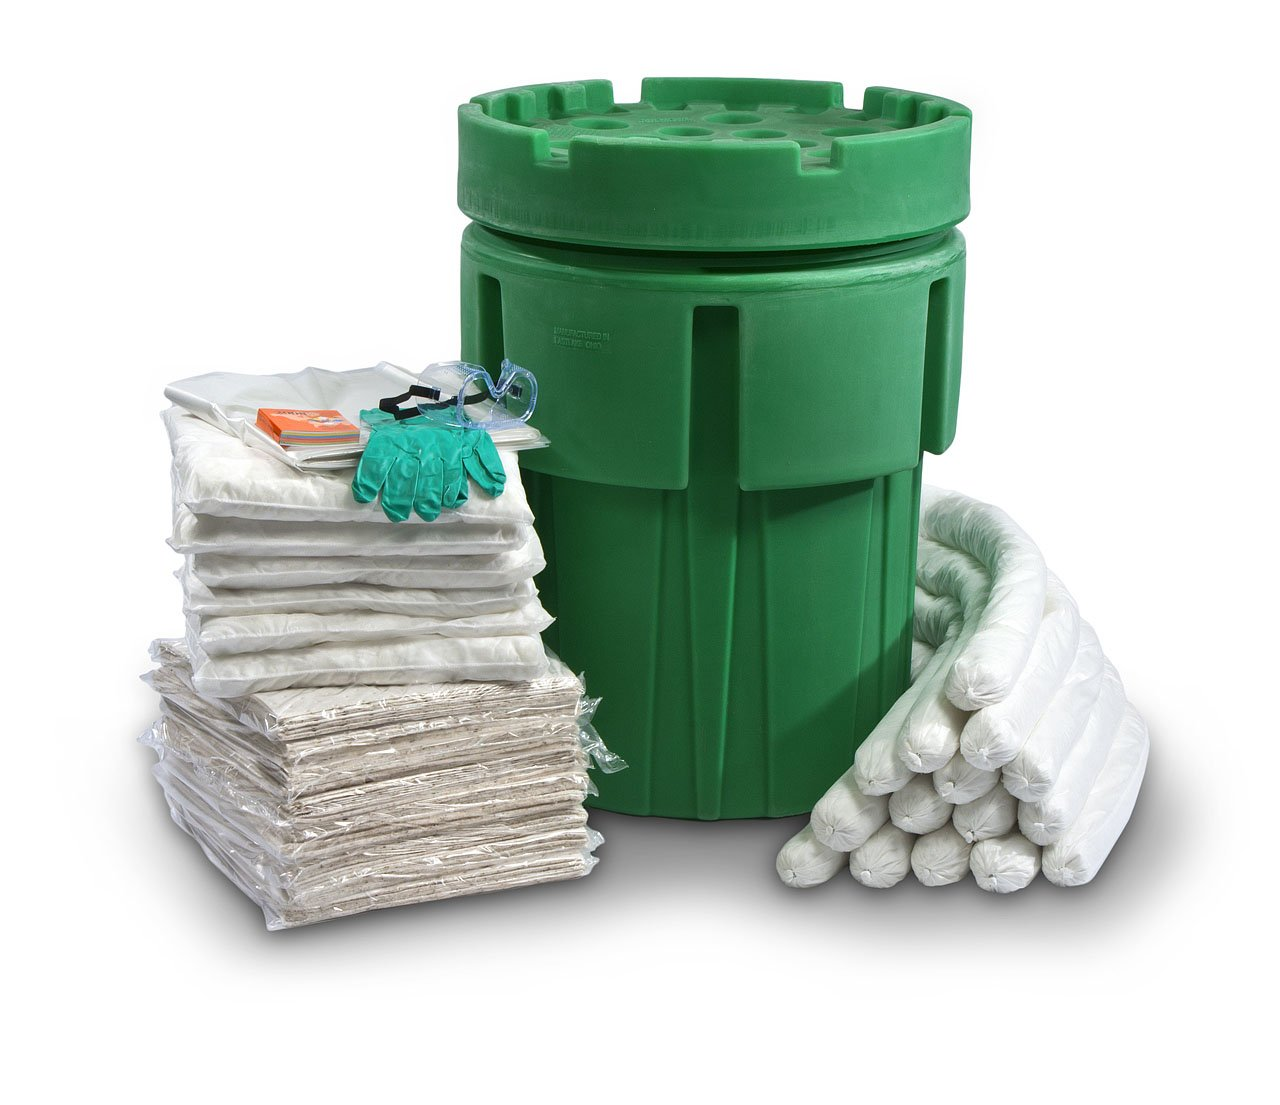 ESP SK-O65 135 Piece 65 Gallons Oil Only Absorbent Ecofriendly Spill Kit, 42 Gallons Absorbency, White